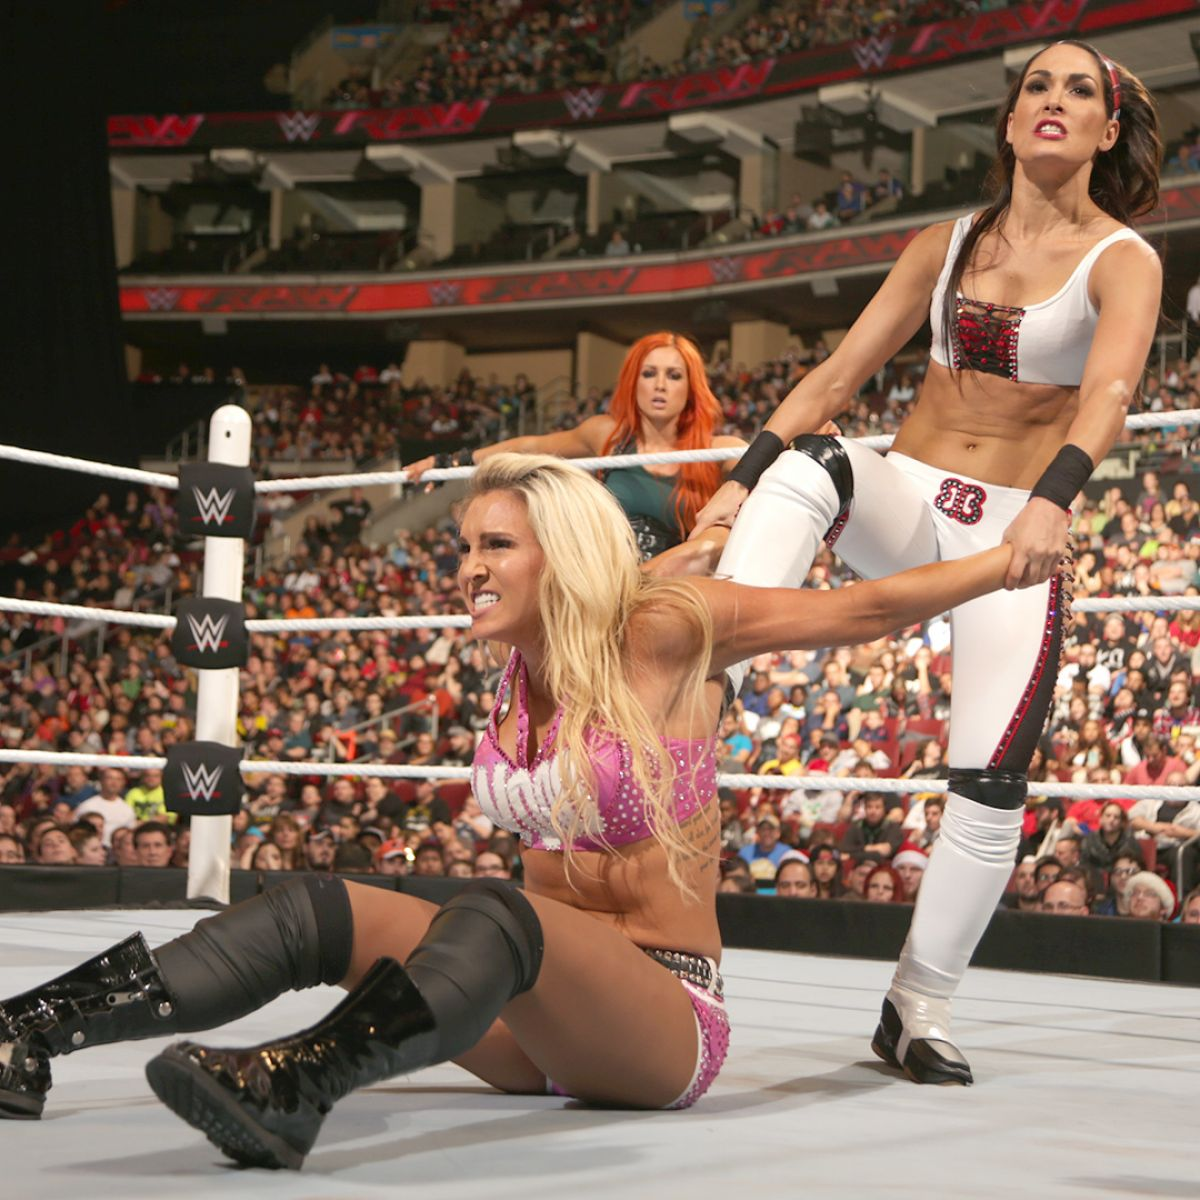 who are the wwe divas dating in real life 3) daniel bryan and brie bella daniel bryan and brie bella began dating while they were both working for the wwe in 2011 on total divas & total bellas, the couple's relationship has been documented in full.